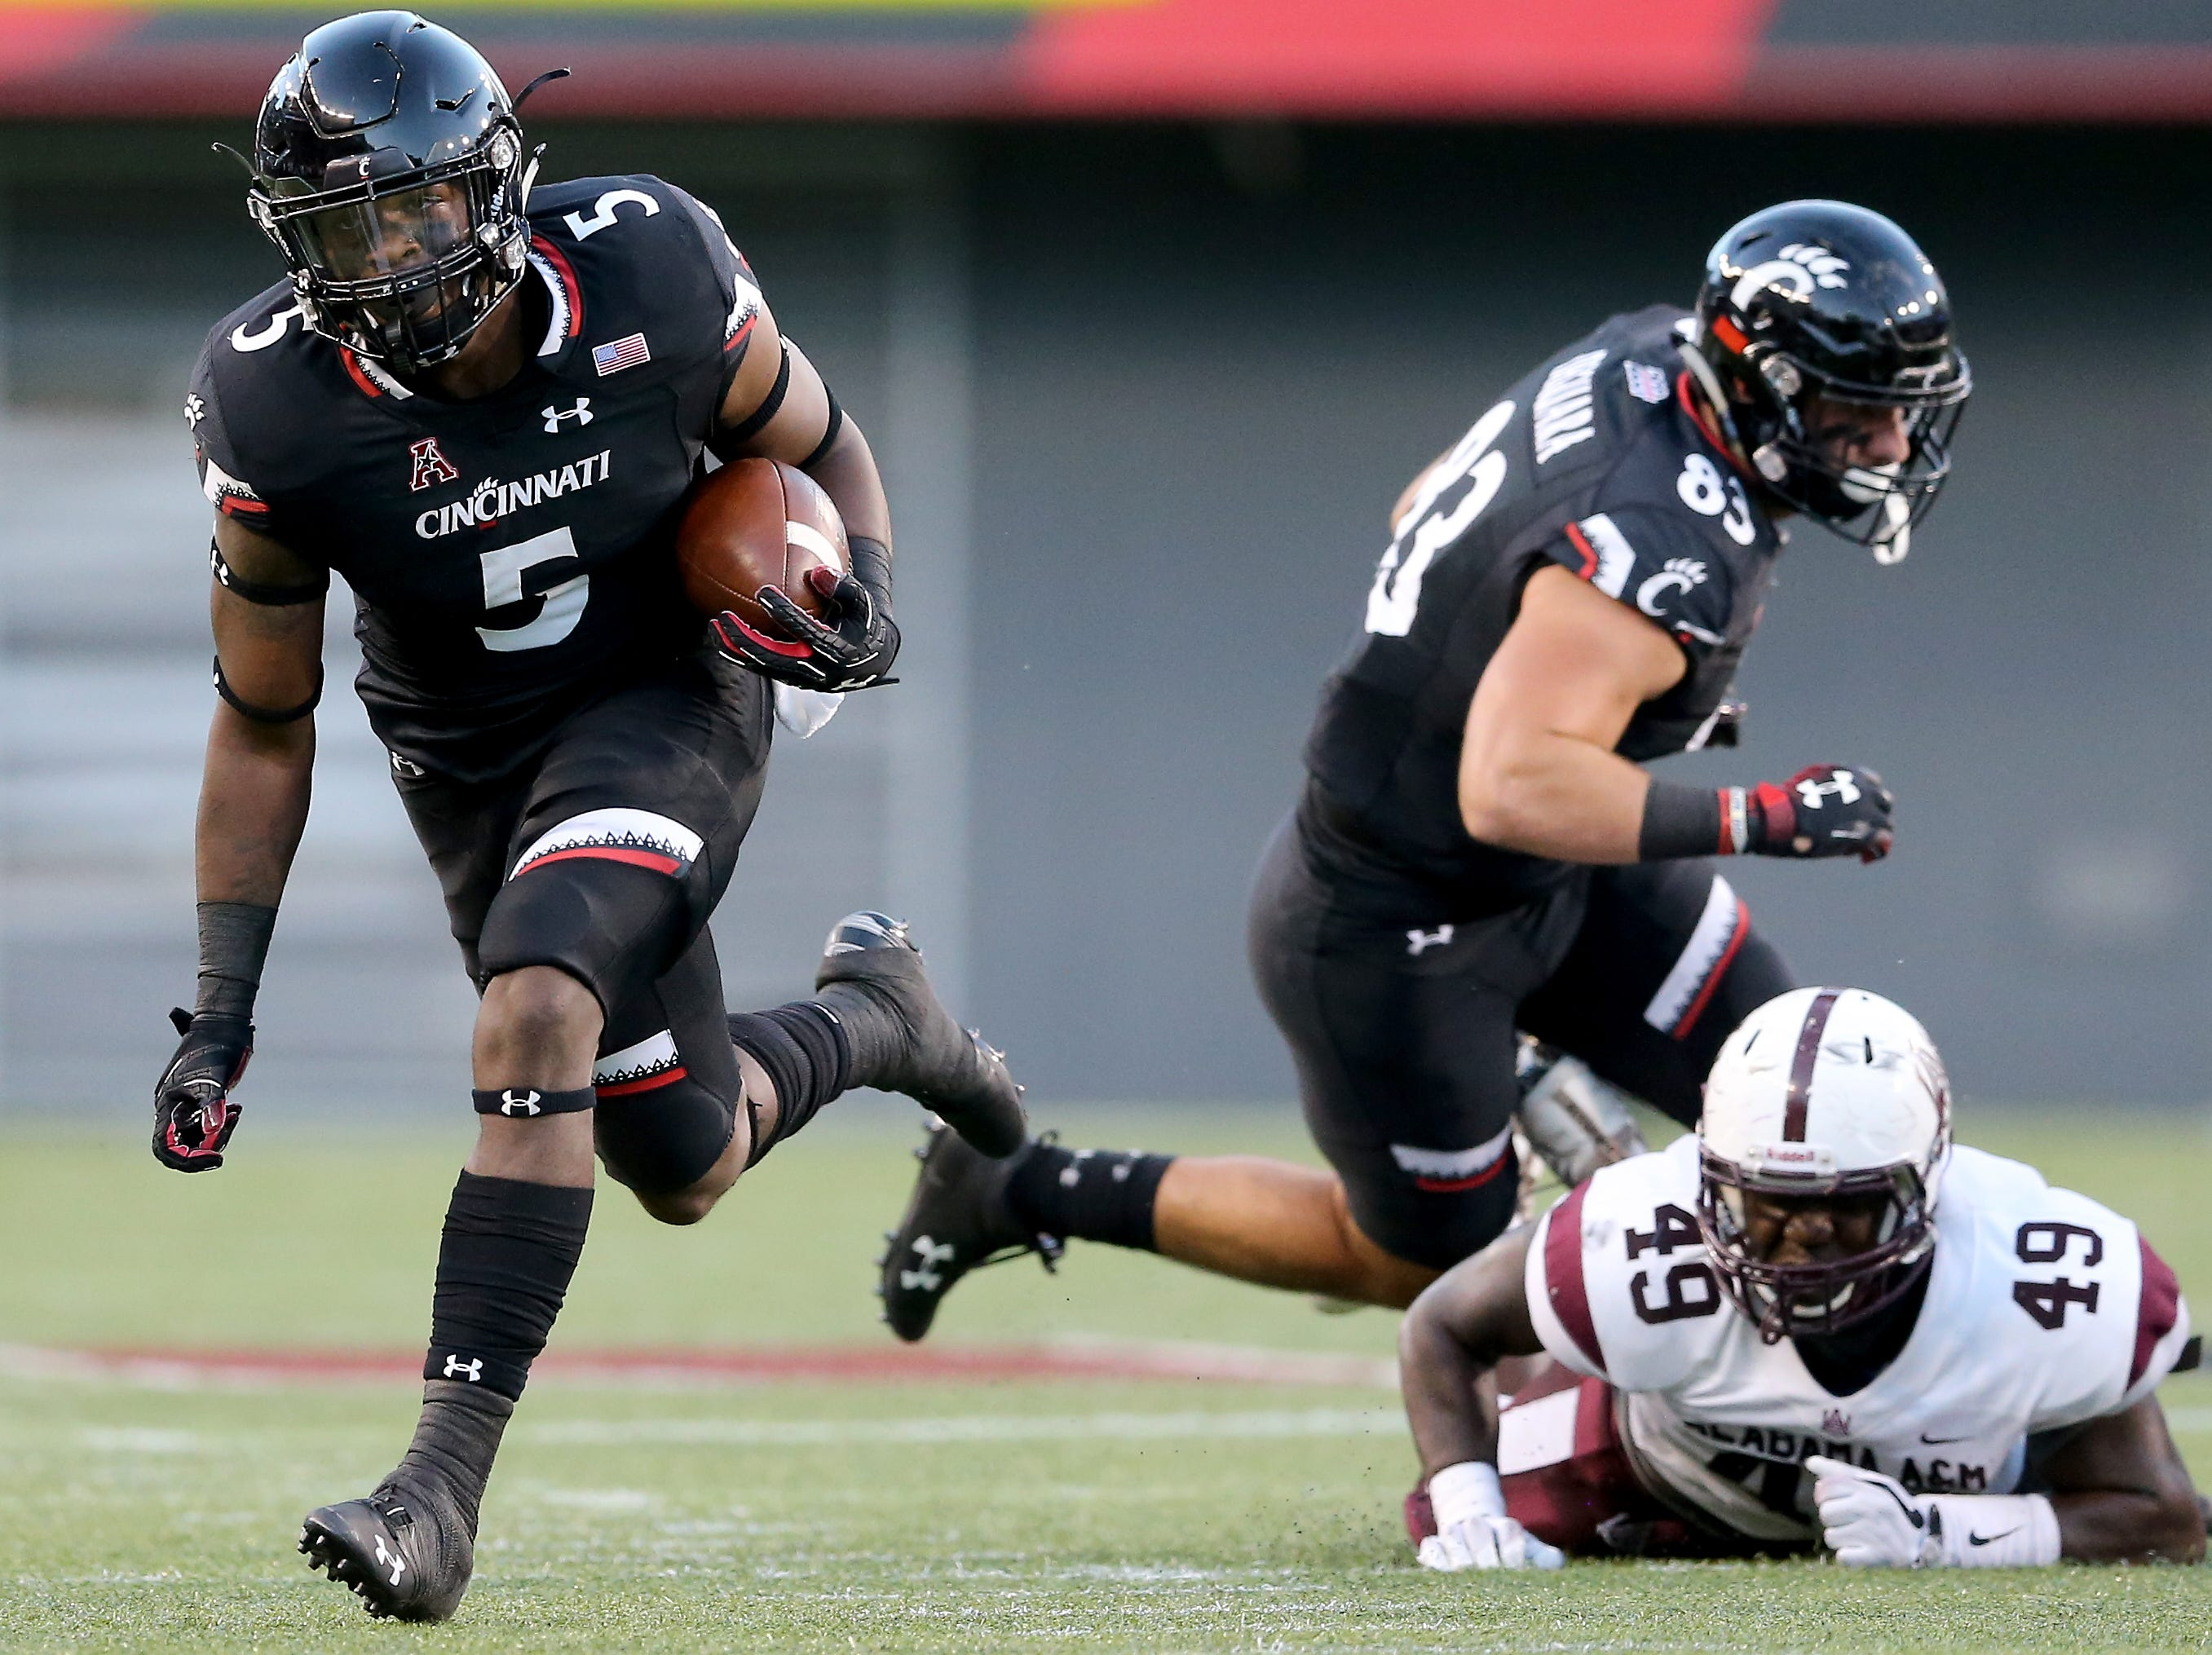 Cincinnati Bearcats running back Tavion Thomas (5) carries the ball as Alabama A&M Bulldogs defensive end Solomon Hunter (49) can't make the tackle in the first quarter during a college football game between the Cincinnati Bearcats and the Alabama A&M Bulldogs, Saturday, Sept. 15, 2018, at Nippert Stadium in Cincinnati.